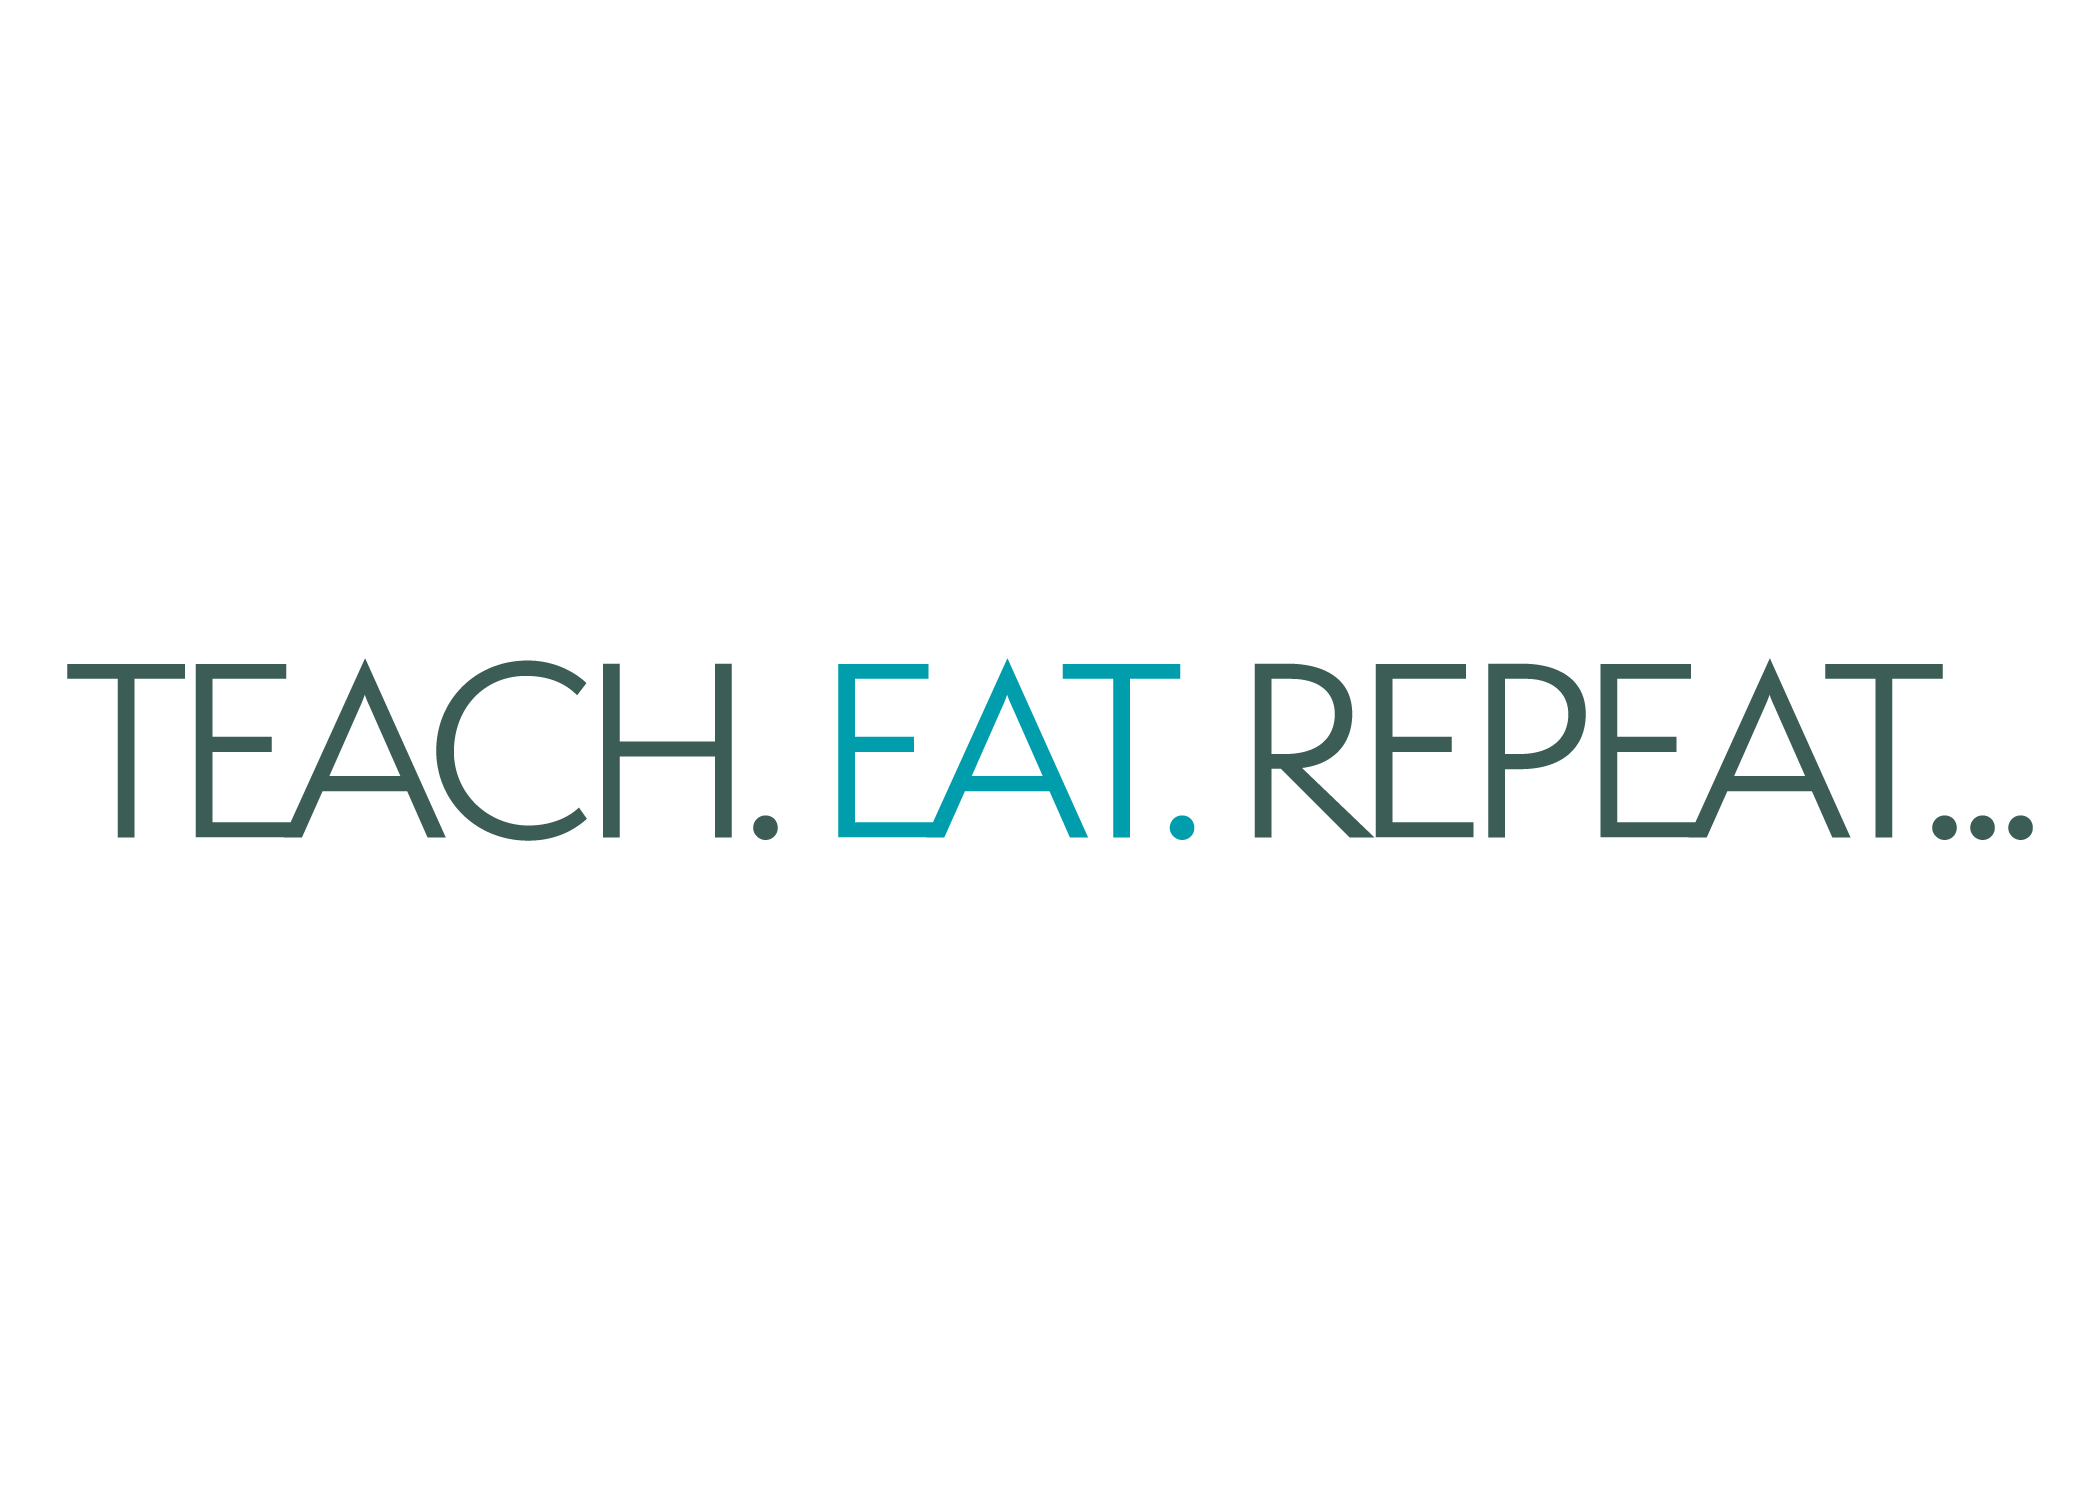 TEACH.EAT.REPEAT...